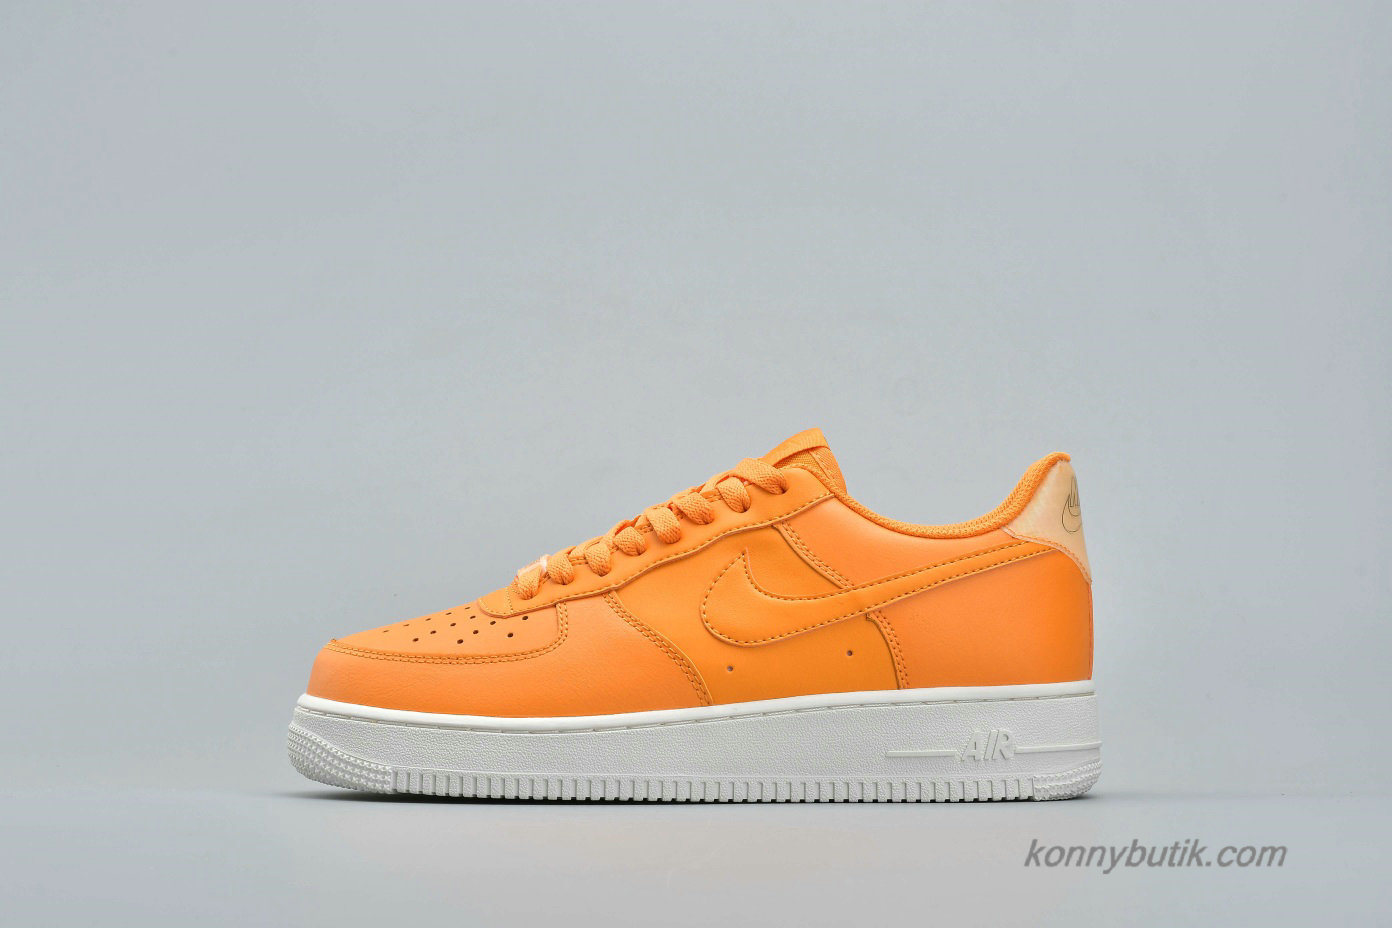 Nike Air Force 1 Low QS Unisex Sko Orange / Off-White (AO2132-801)